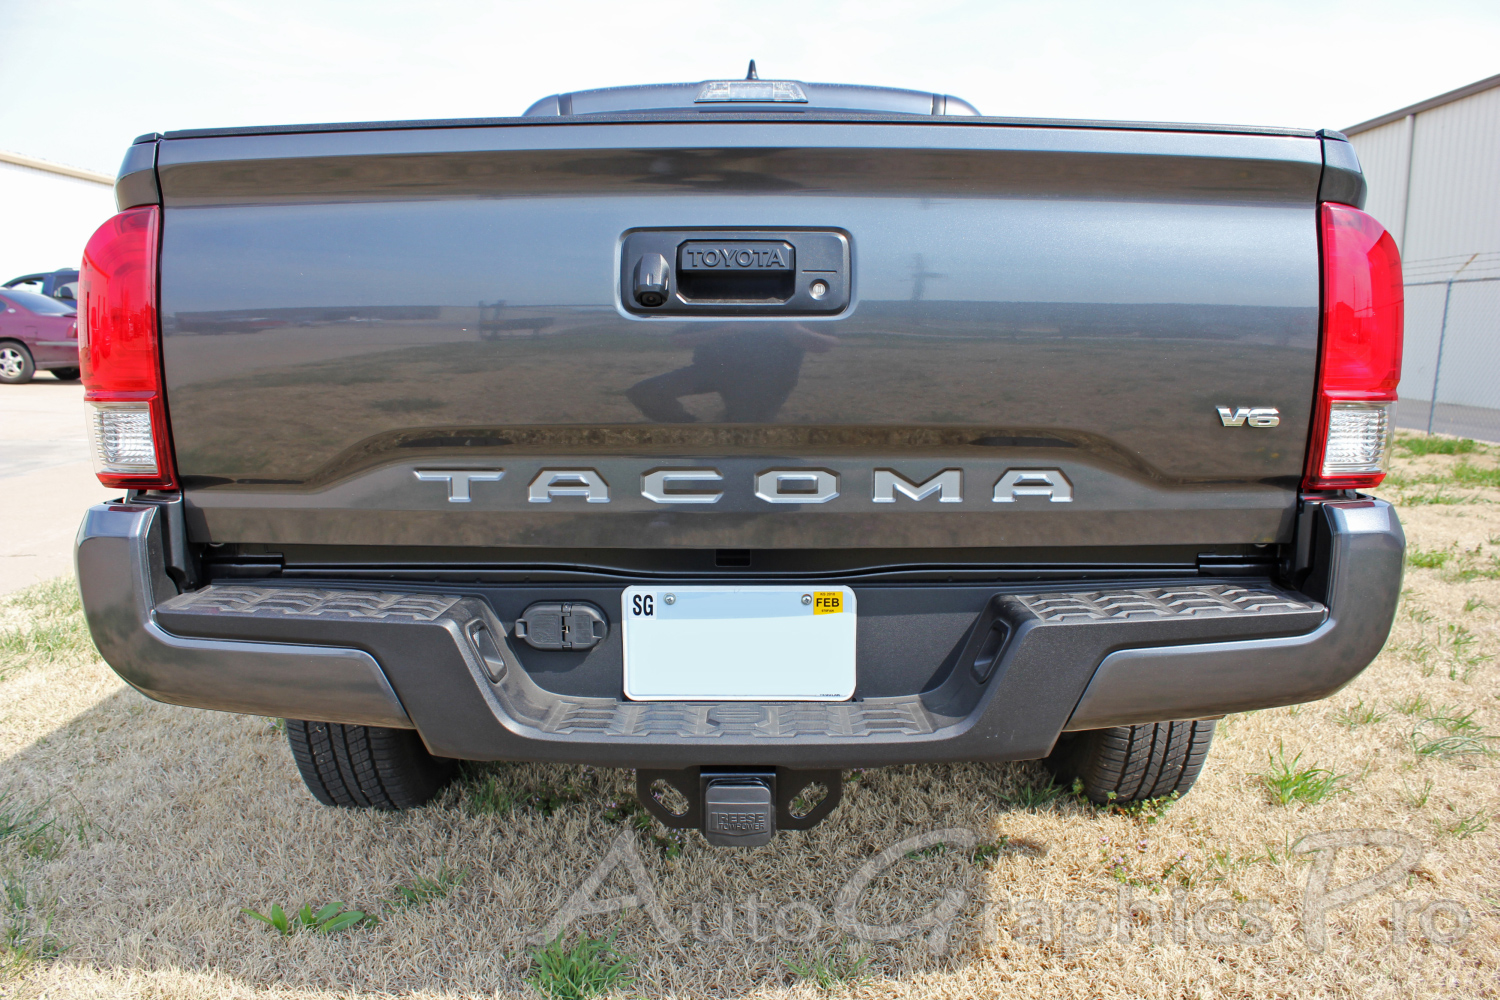 2015 2016 2017 toyota tacoma tailgate letters rear bed lettering trd sport pro accent trim decal 3m vinyl graphics stripe kit